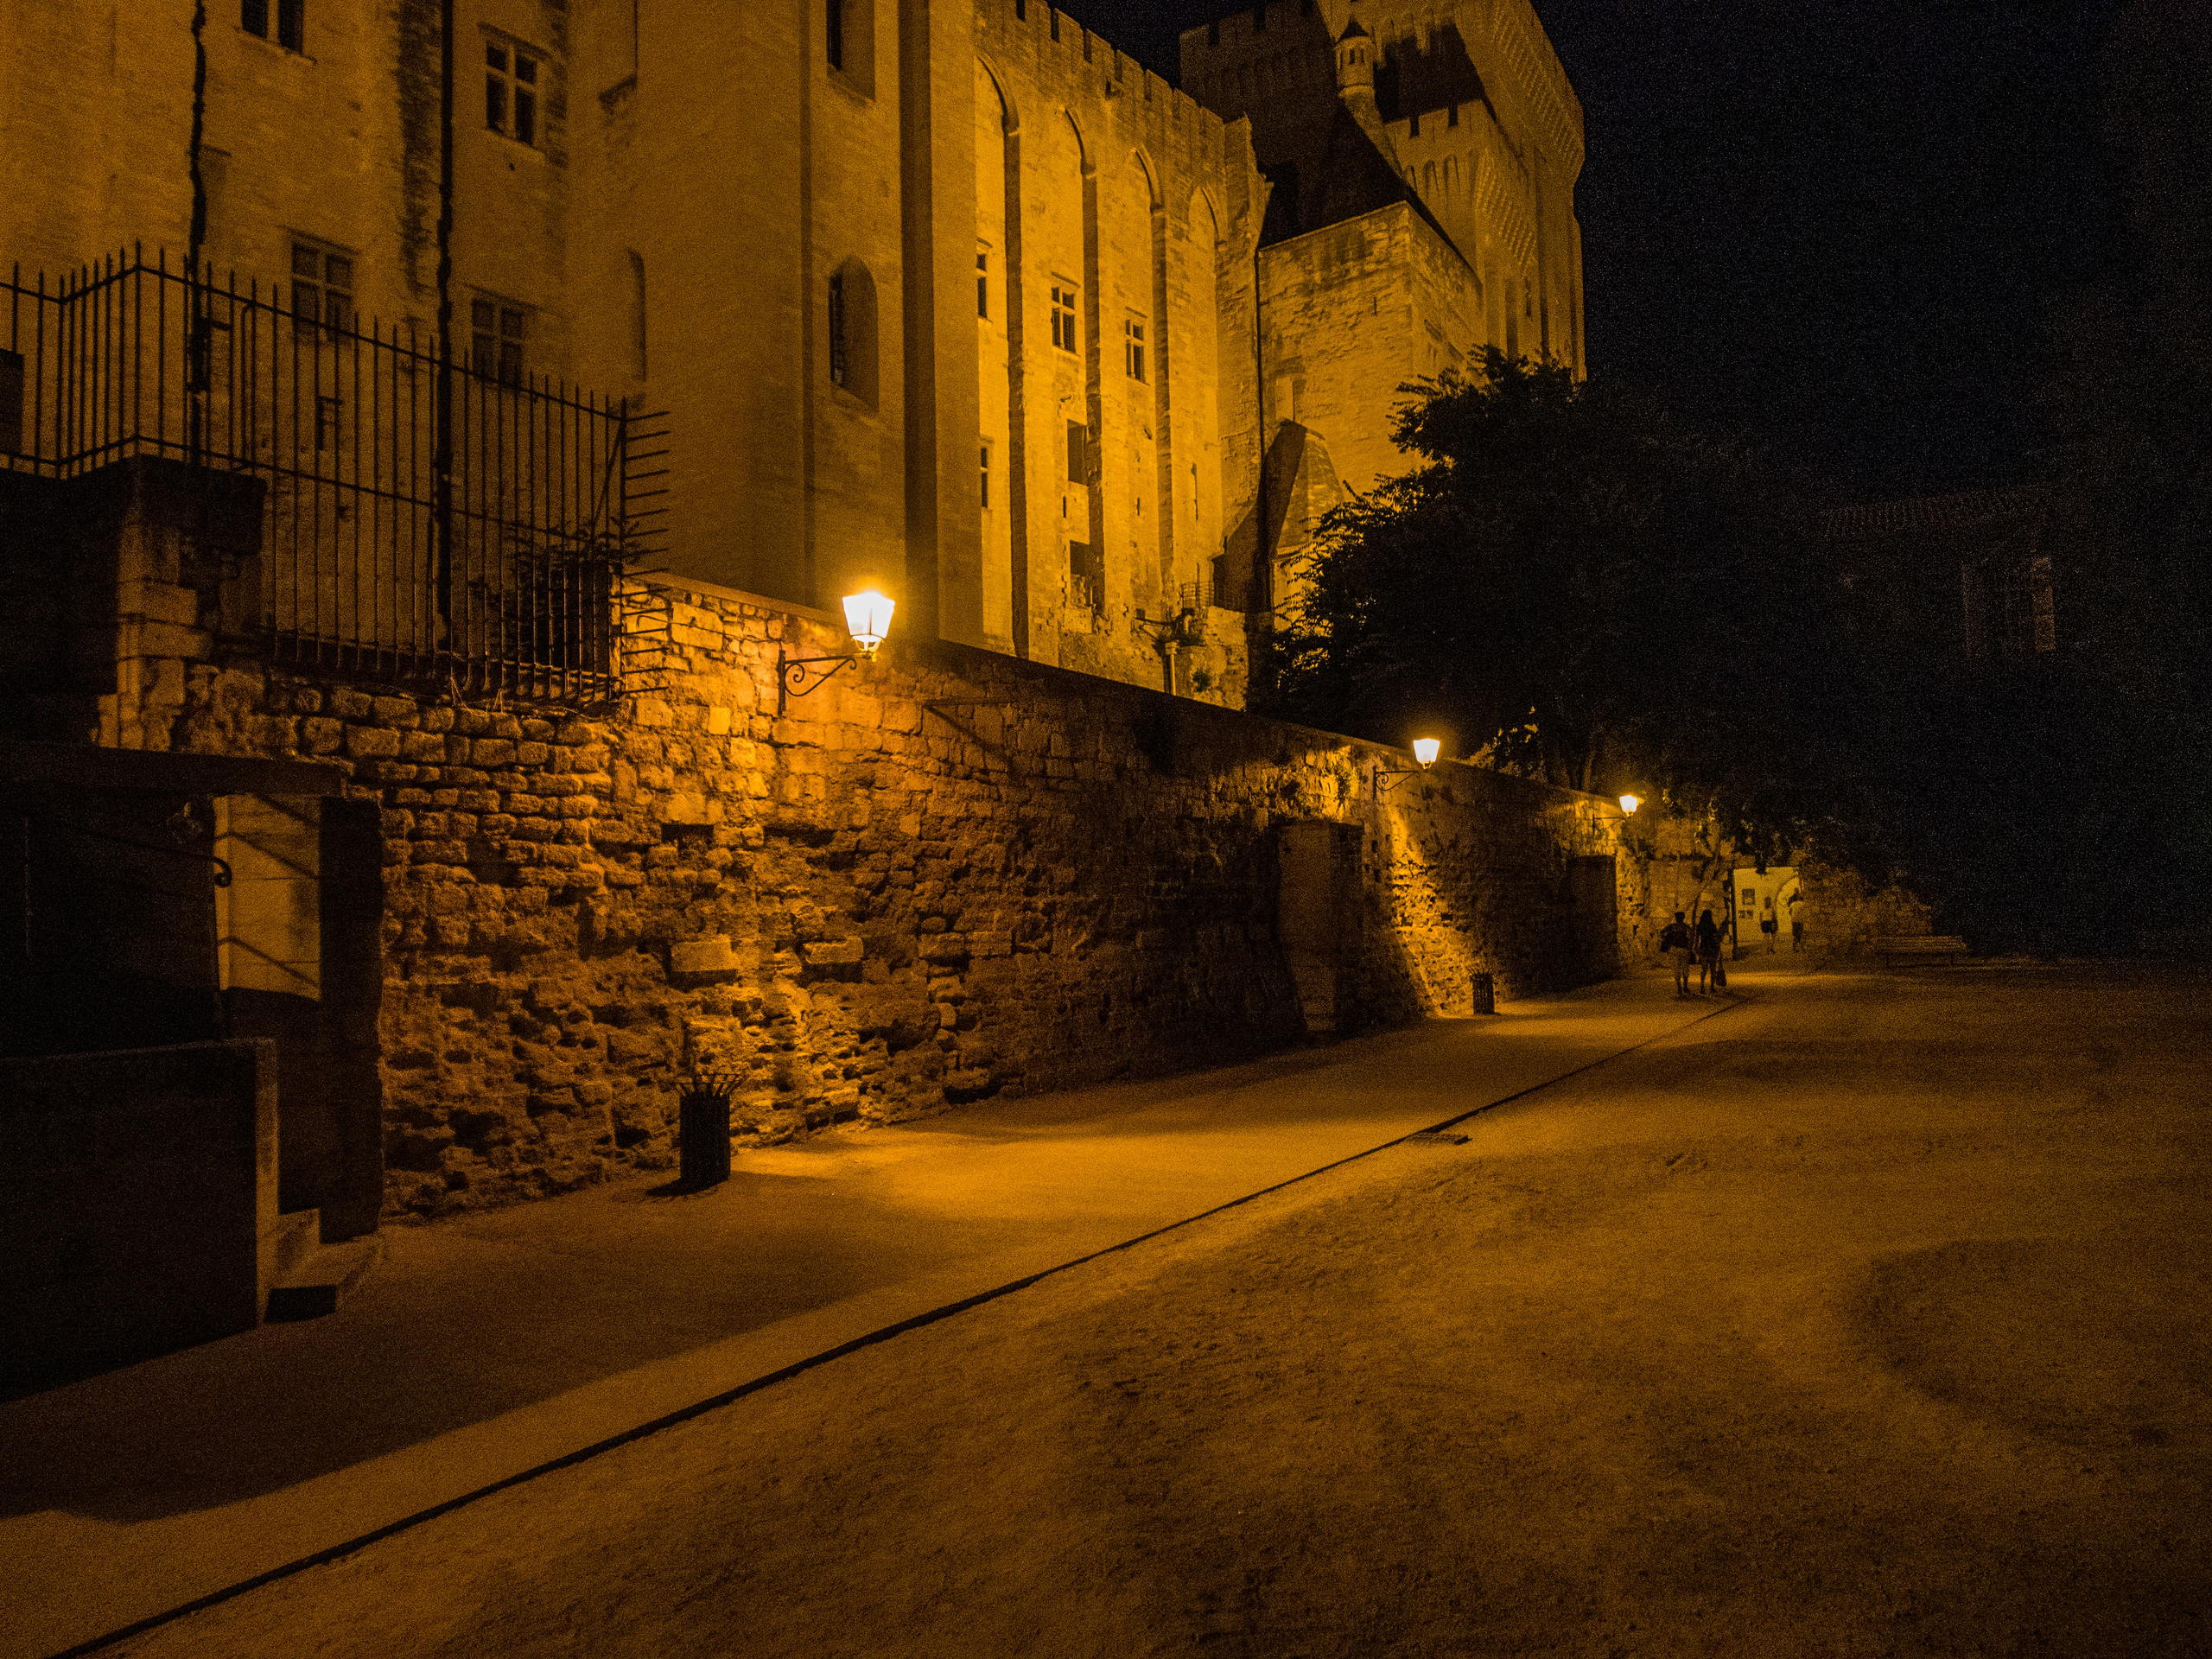 An alley along the side of the Palais des Papes, Avignon, France